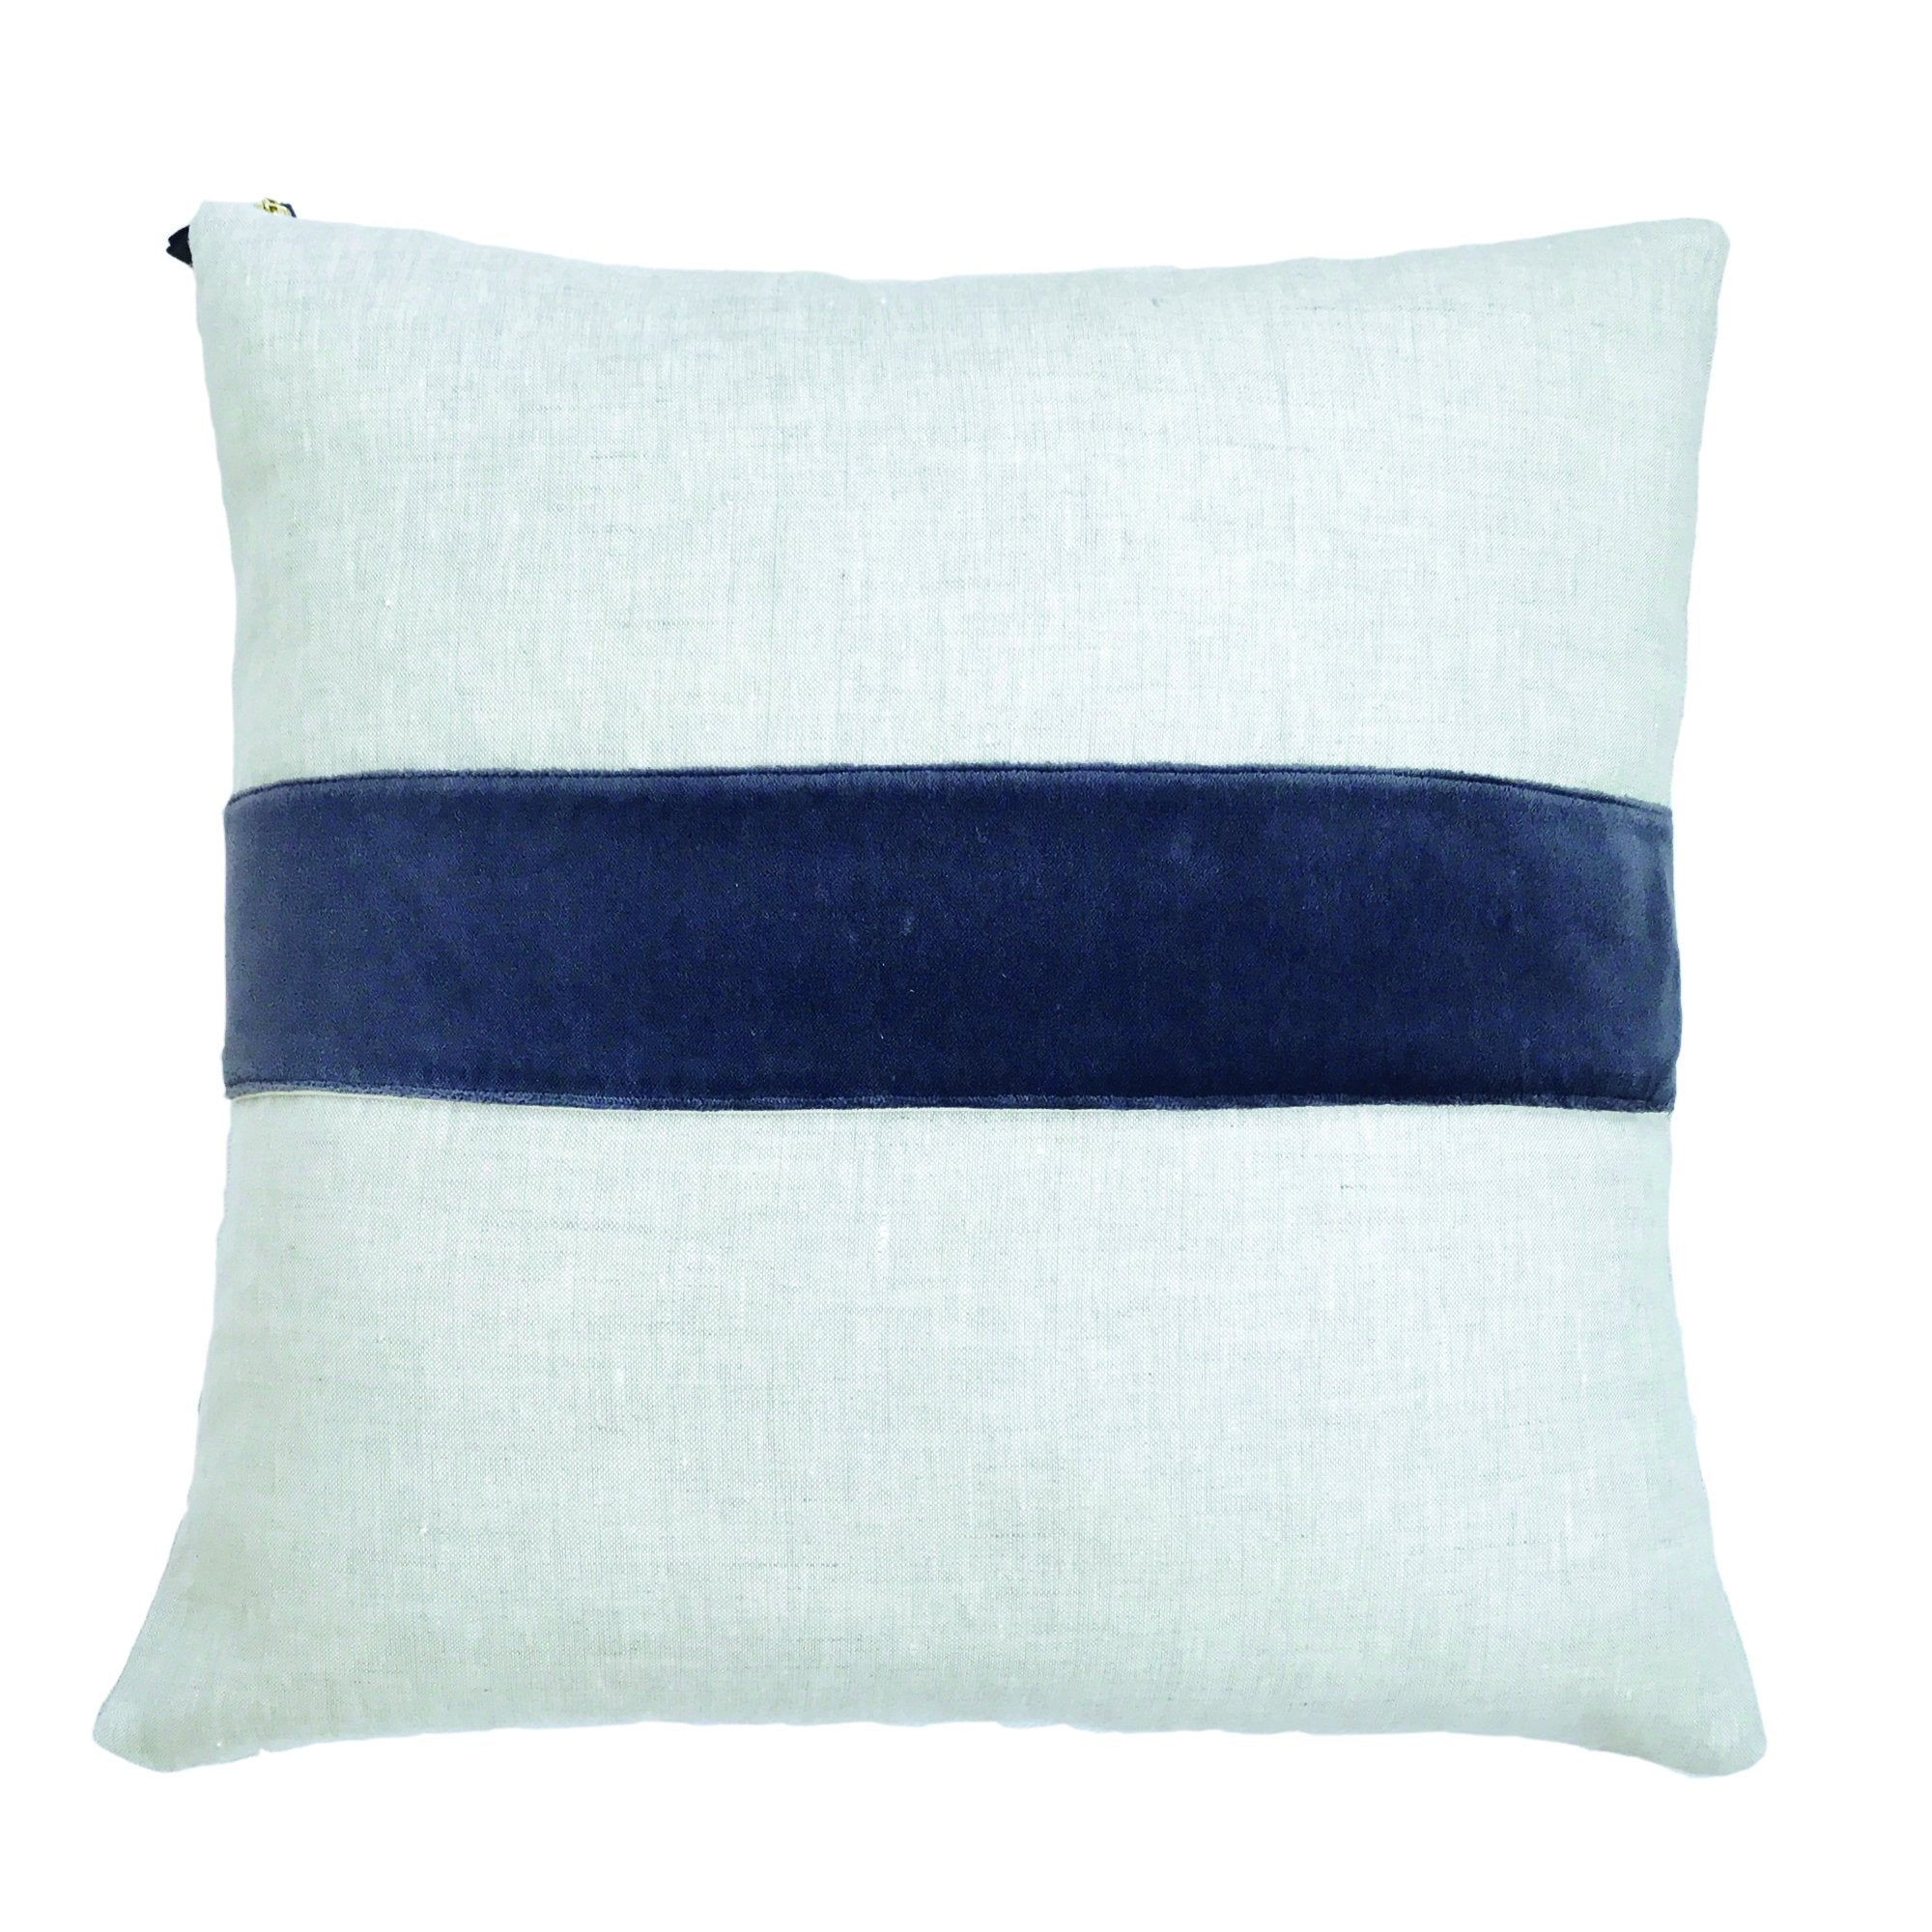 CHARCOAL VELVET BAND LINEN PILLOW